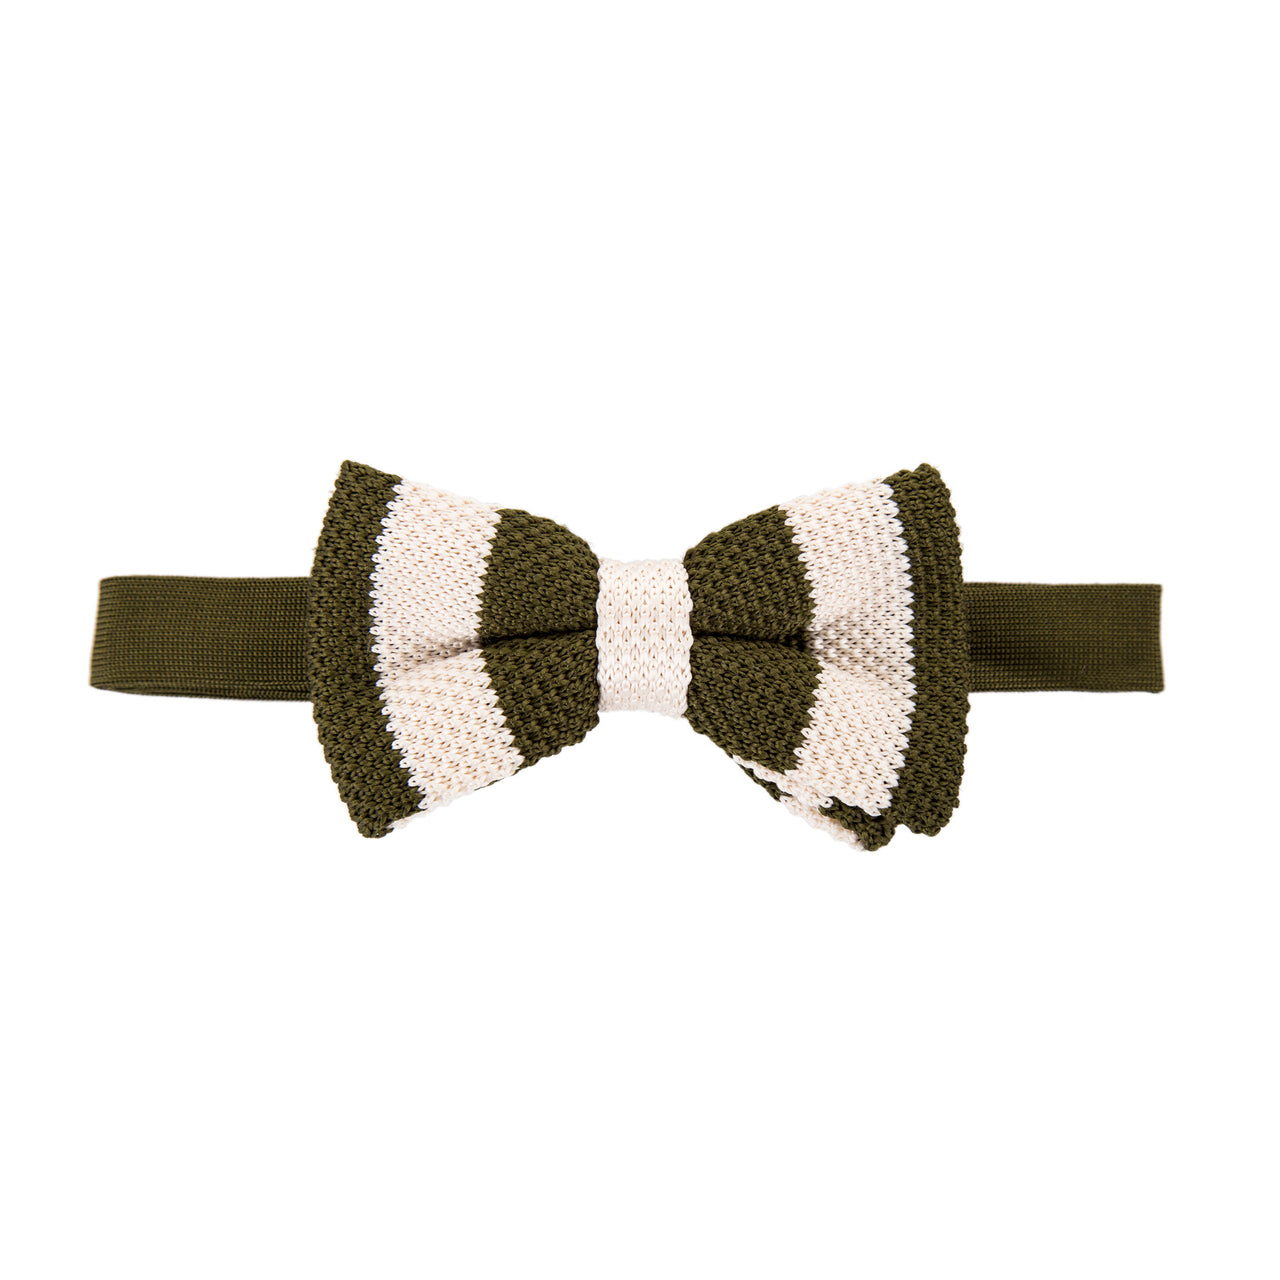 Pre-tied Knitted Bow Tie - Olive Green/Cream